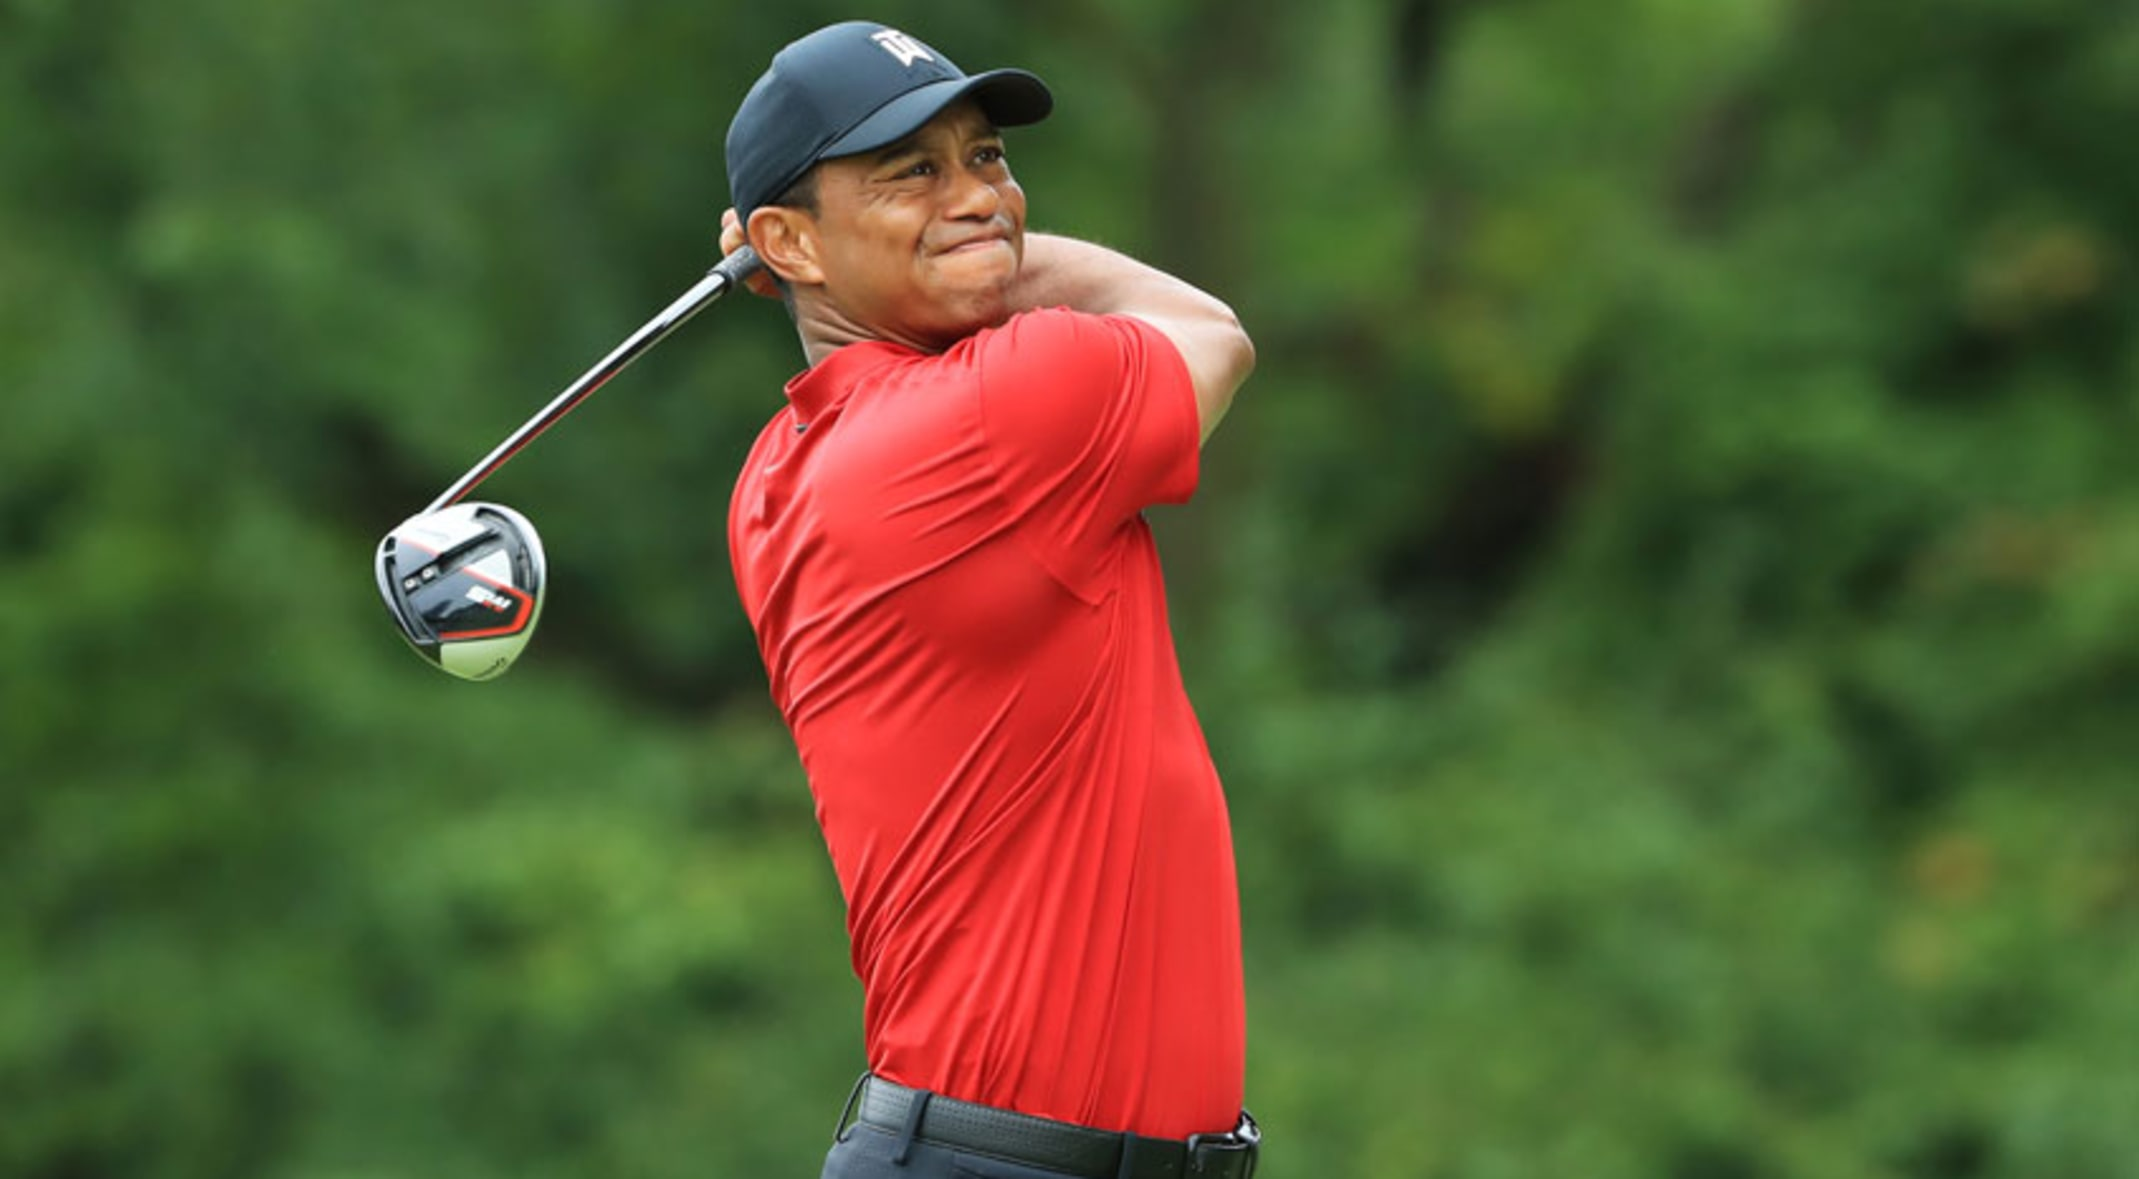 Tiger Woods Cleared For Full Practice Following Knee Surgery